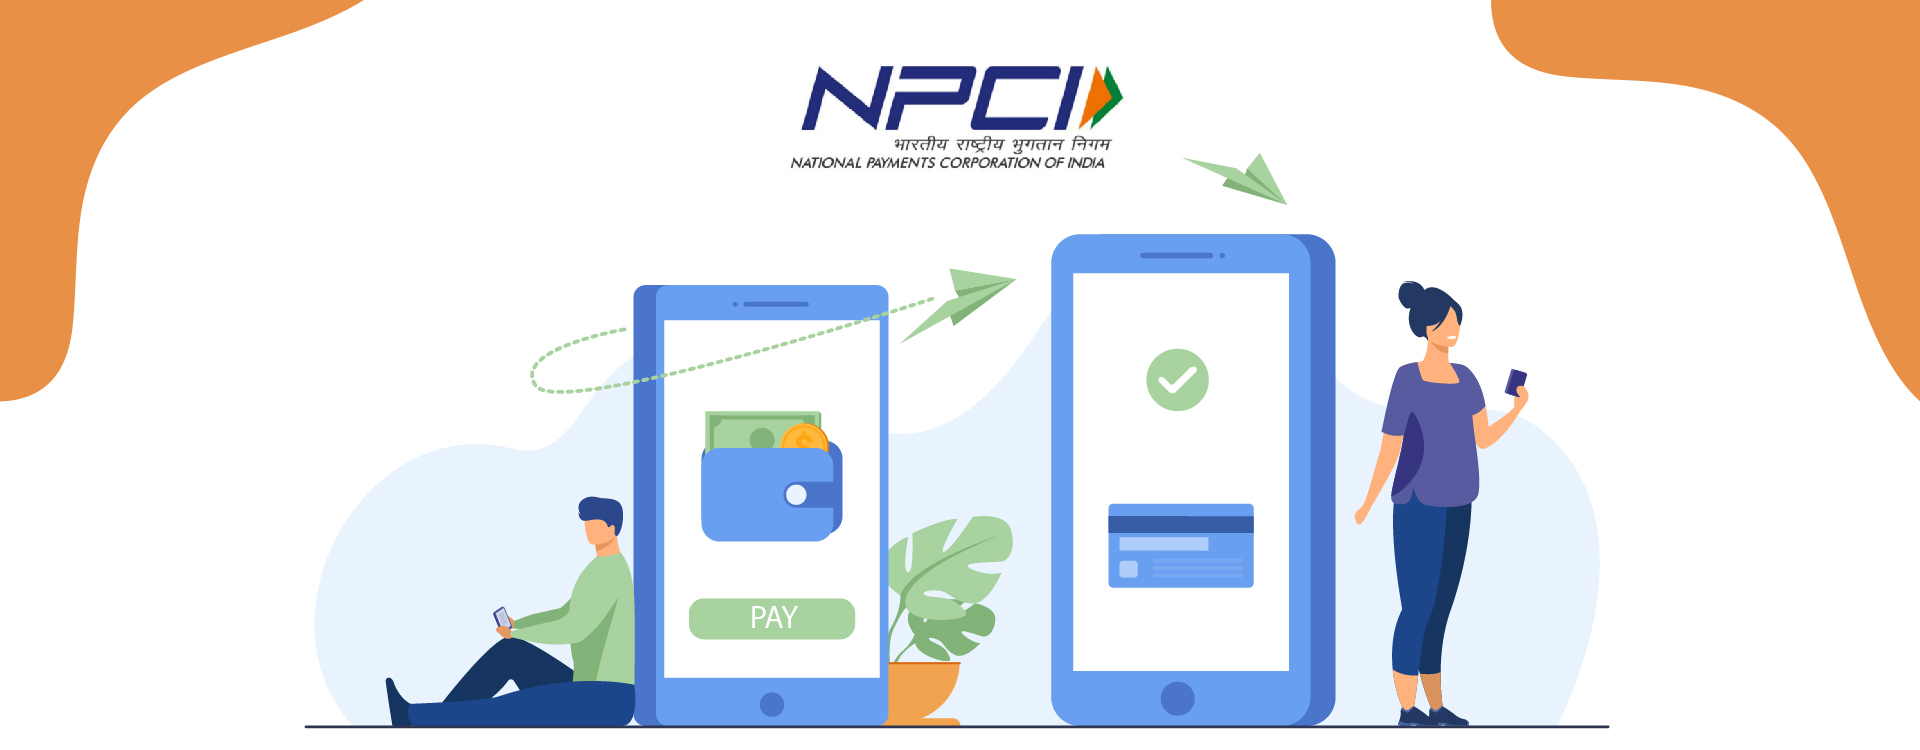 What is the National Payment Corporation of India?